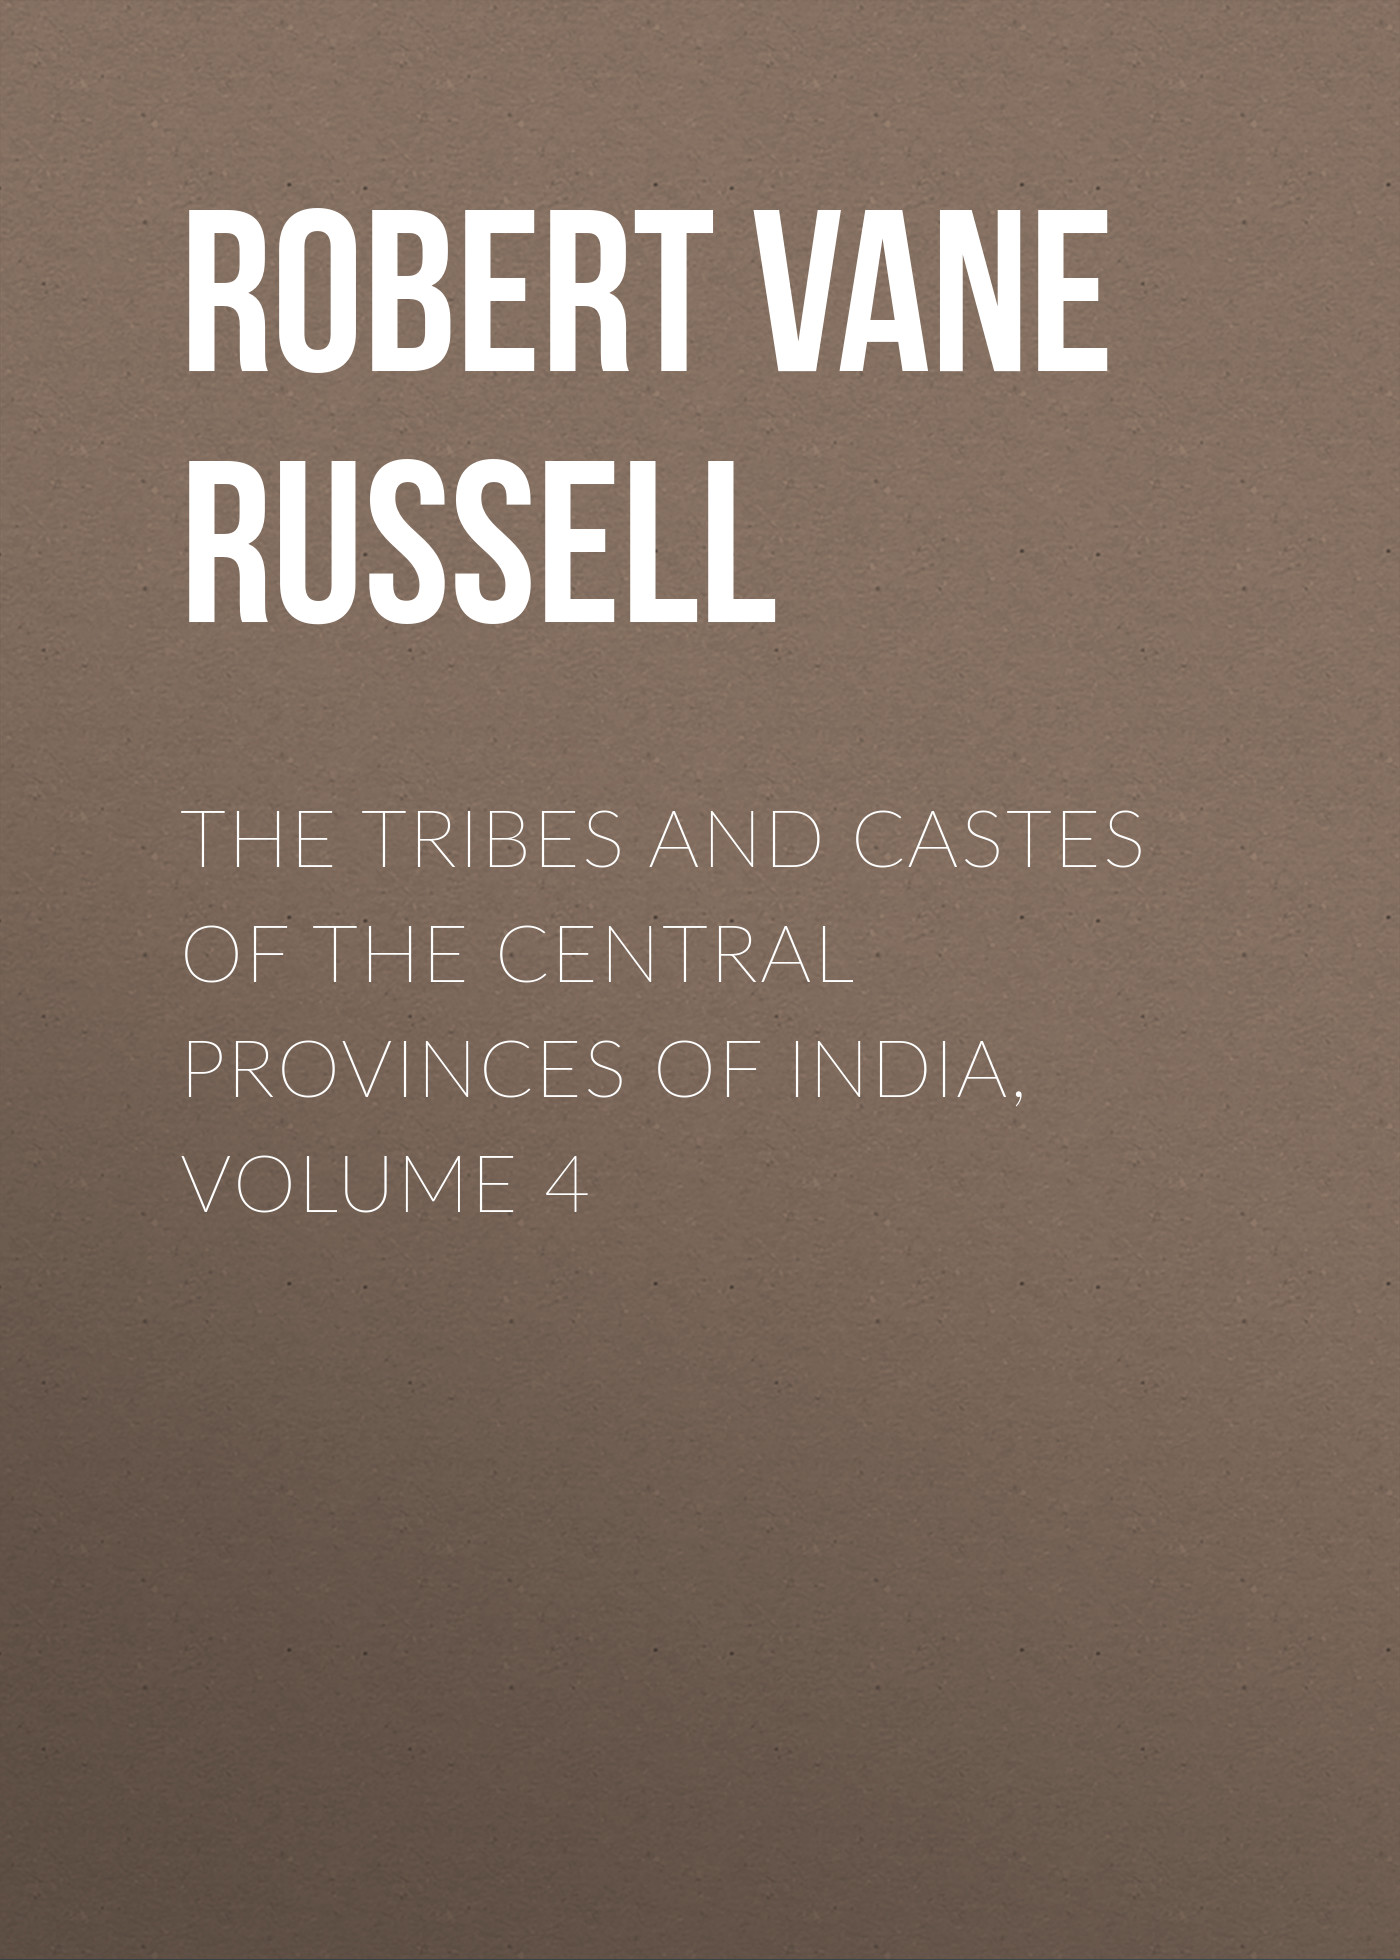 Robert Vane Russell The Tribes and Castes of the Central Provinces of India, Volume 4 robert vane russell the tribes and castes of the central provinces of india volume 3